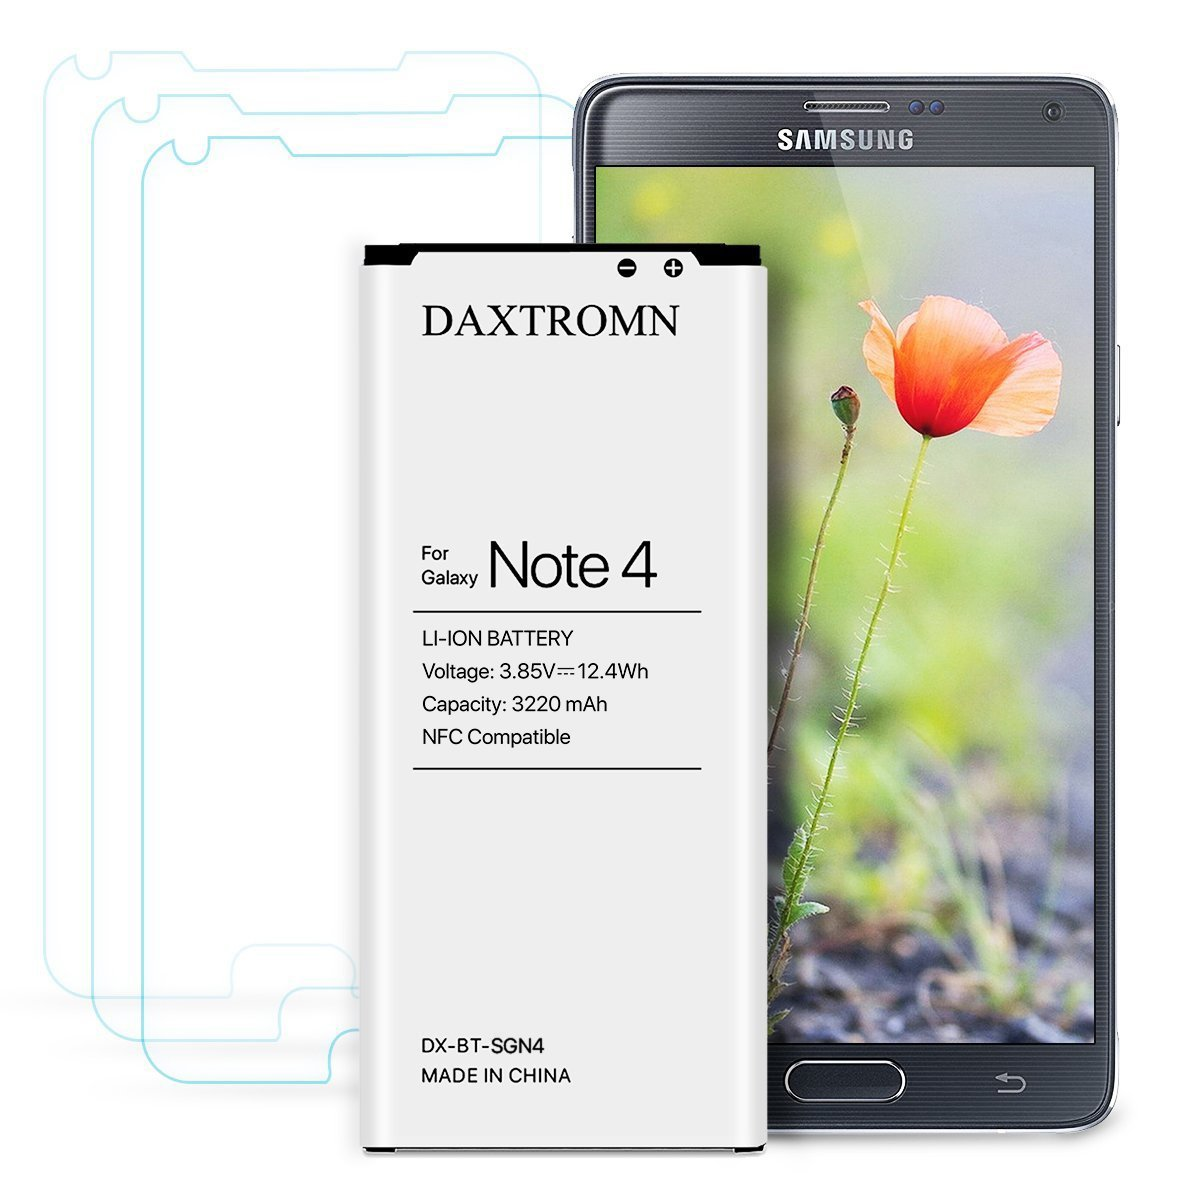 caed1eb5481 Note 4 Battery, DAXTROMN 3220 mAh Replacement Battery for Samsung Galaxy  Note 4 N910, N910U 4G LTE, N910V, N910T, N910A, N910P with Screen Protector  ...